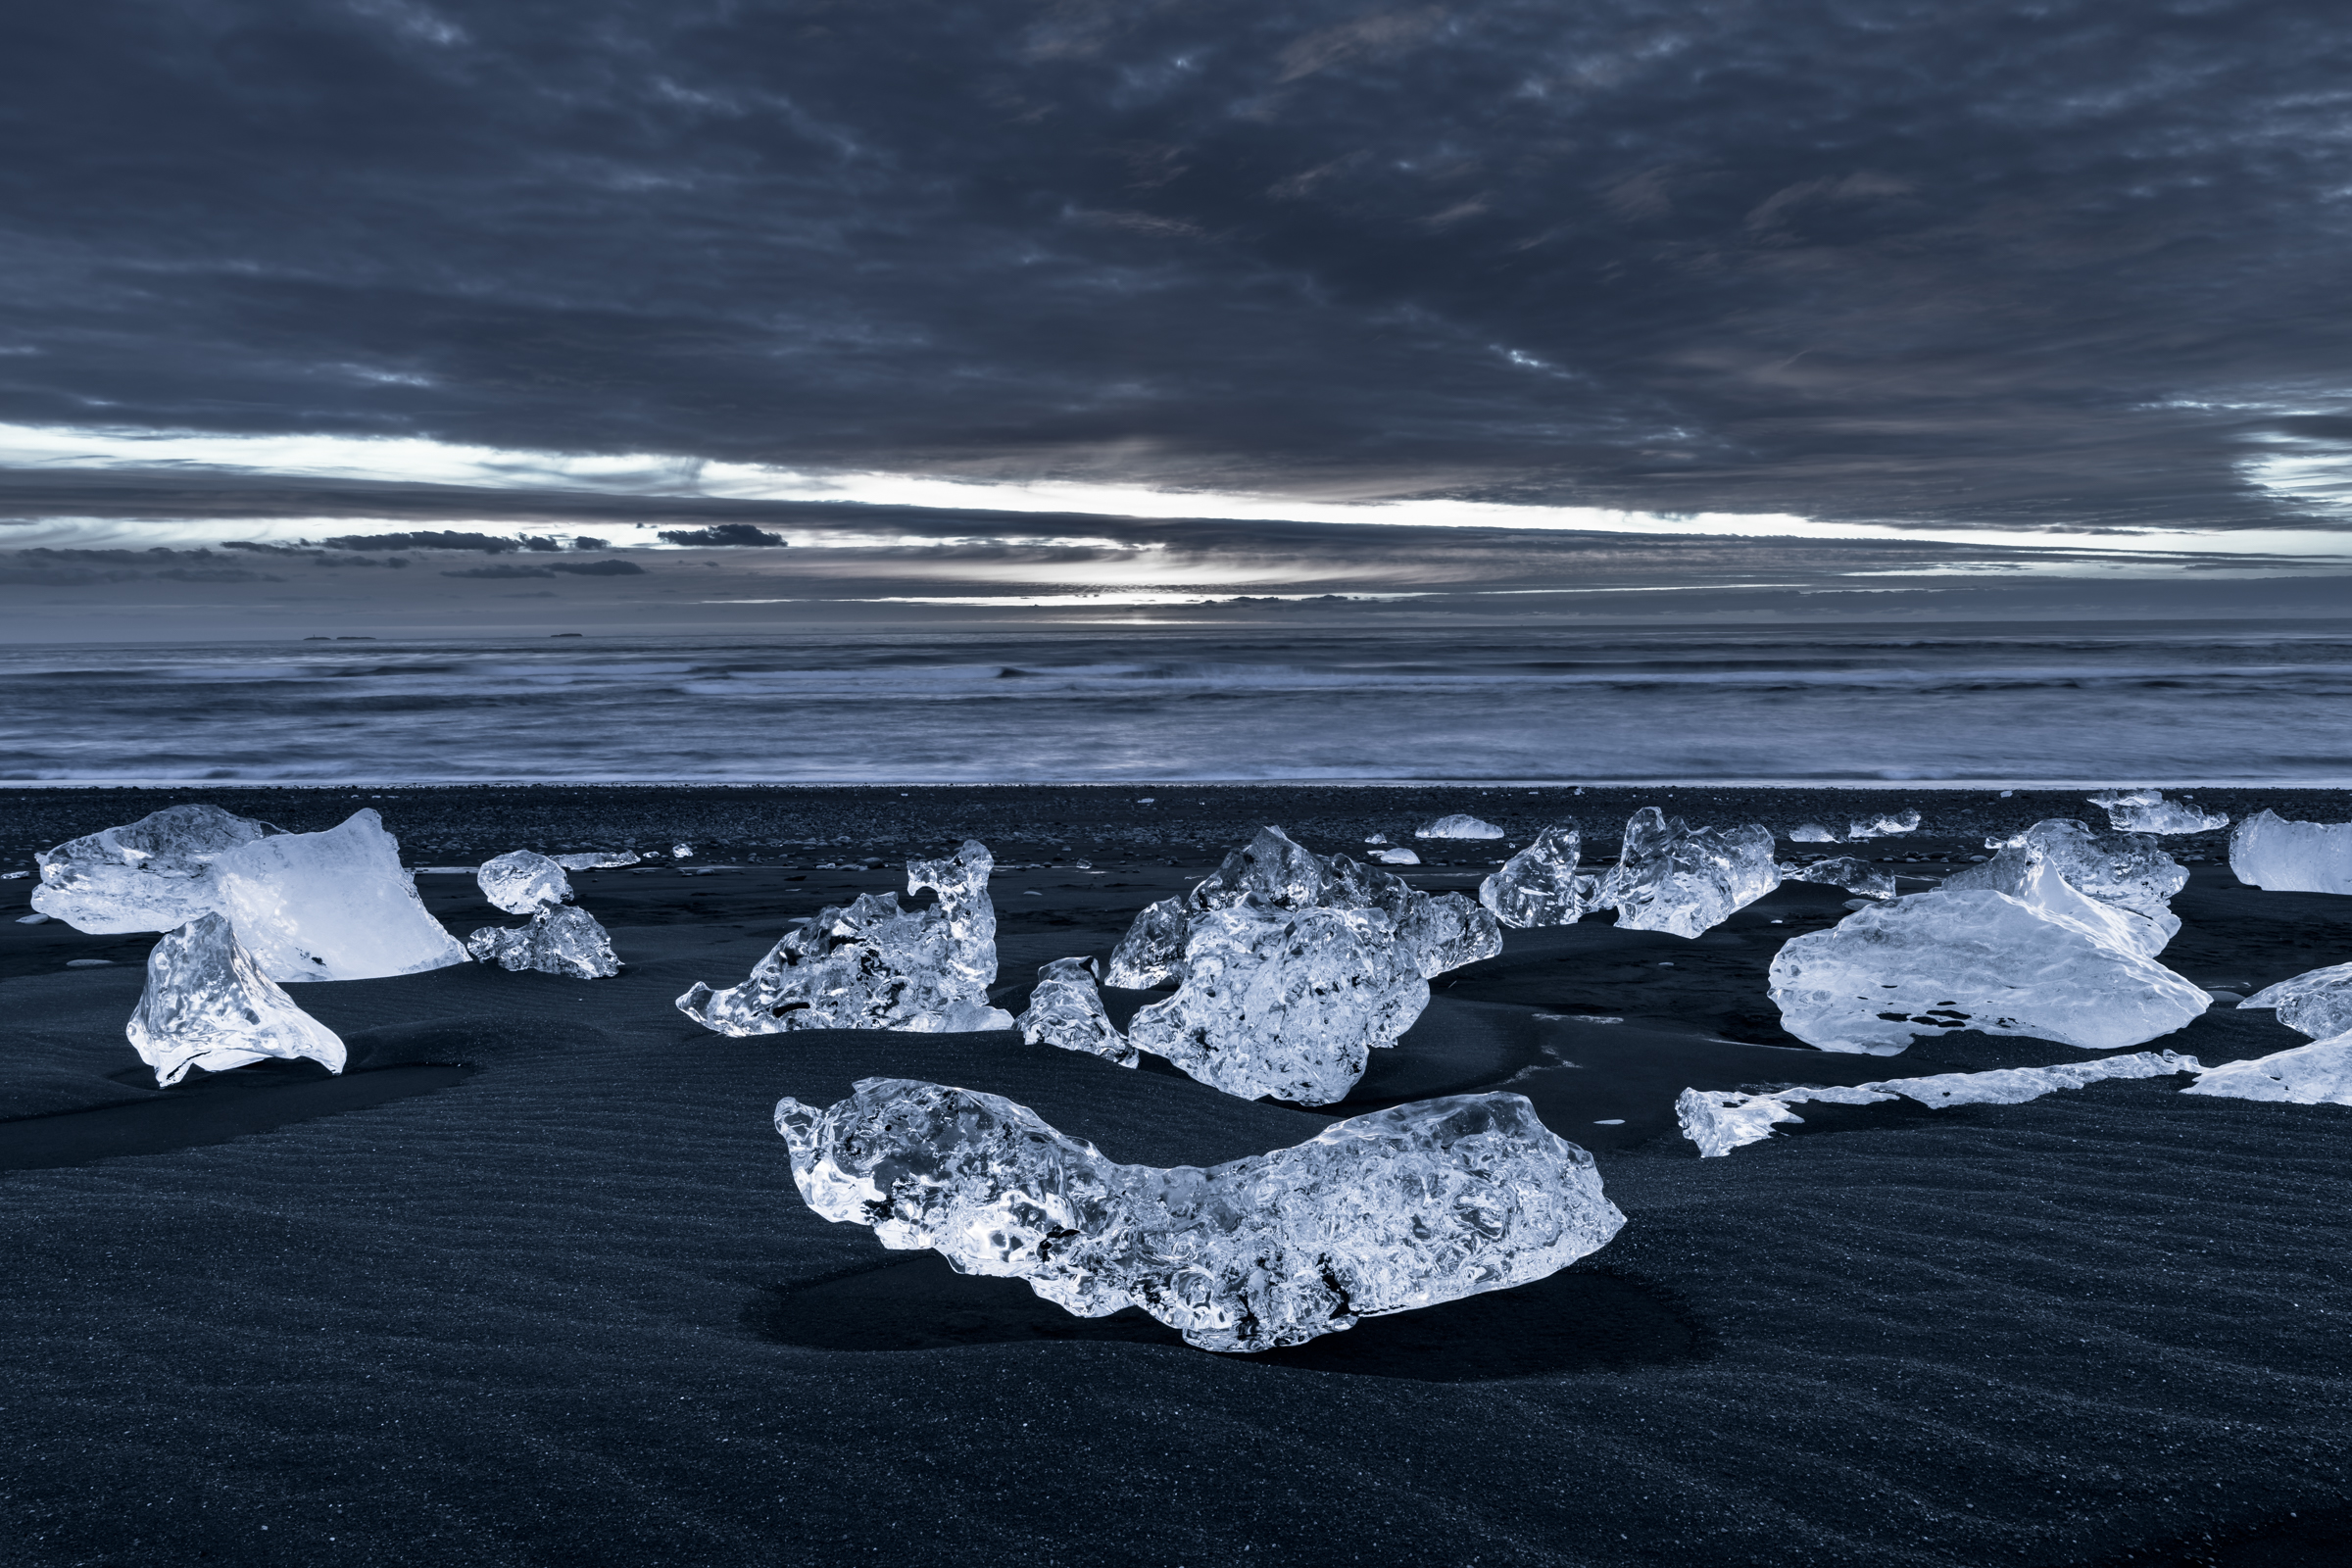 Diamonds (Iceland 2015)